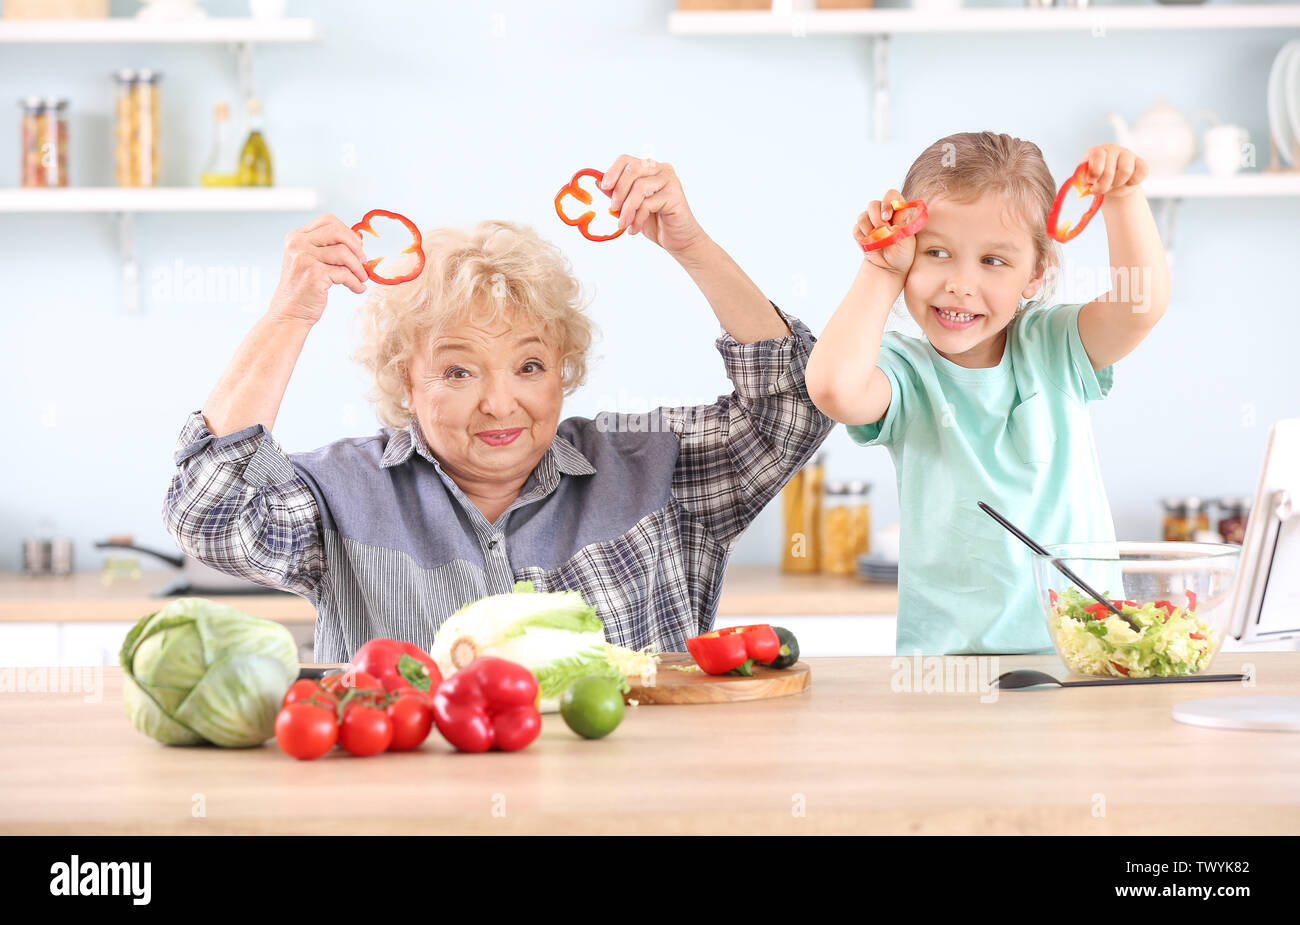 Cute little girl with grandmother having fun in kitchen - Stock Image